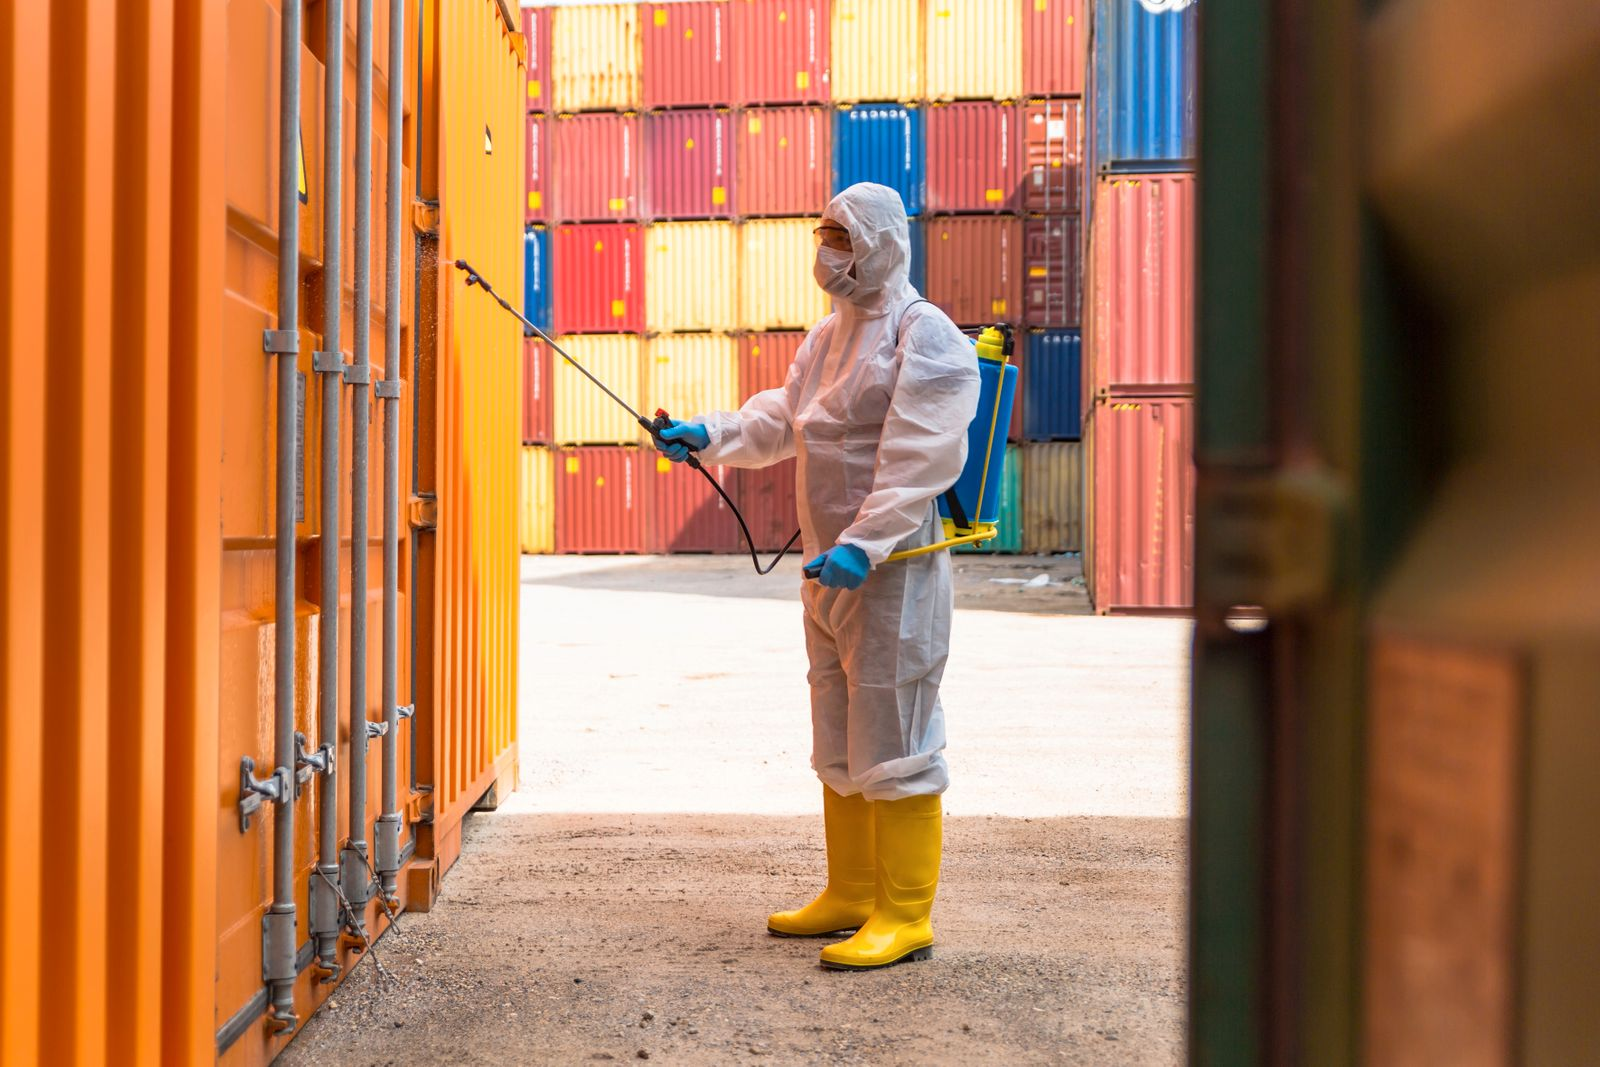 Disease control service Staff Disinfect Cargo To Prevent Spread COVID-19